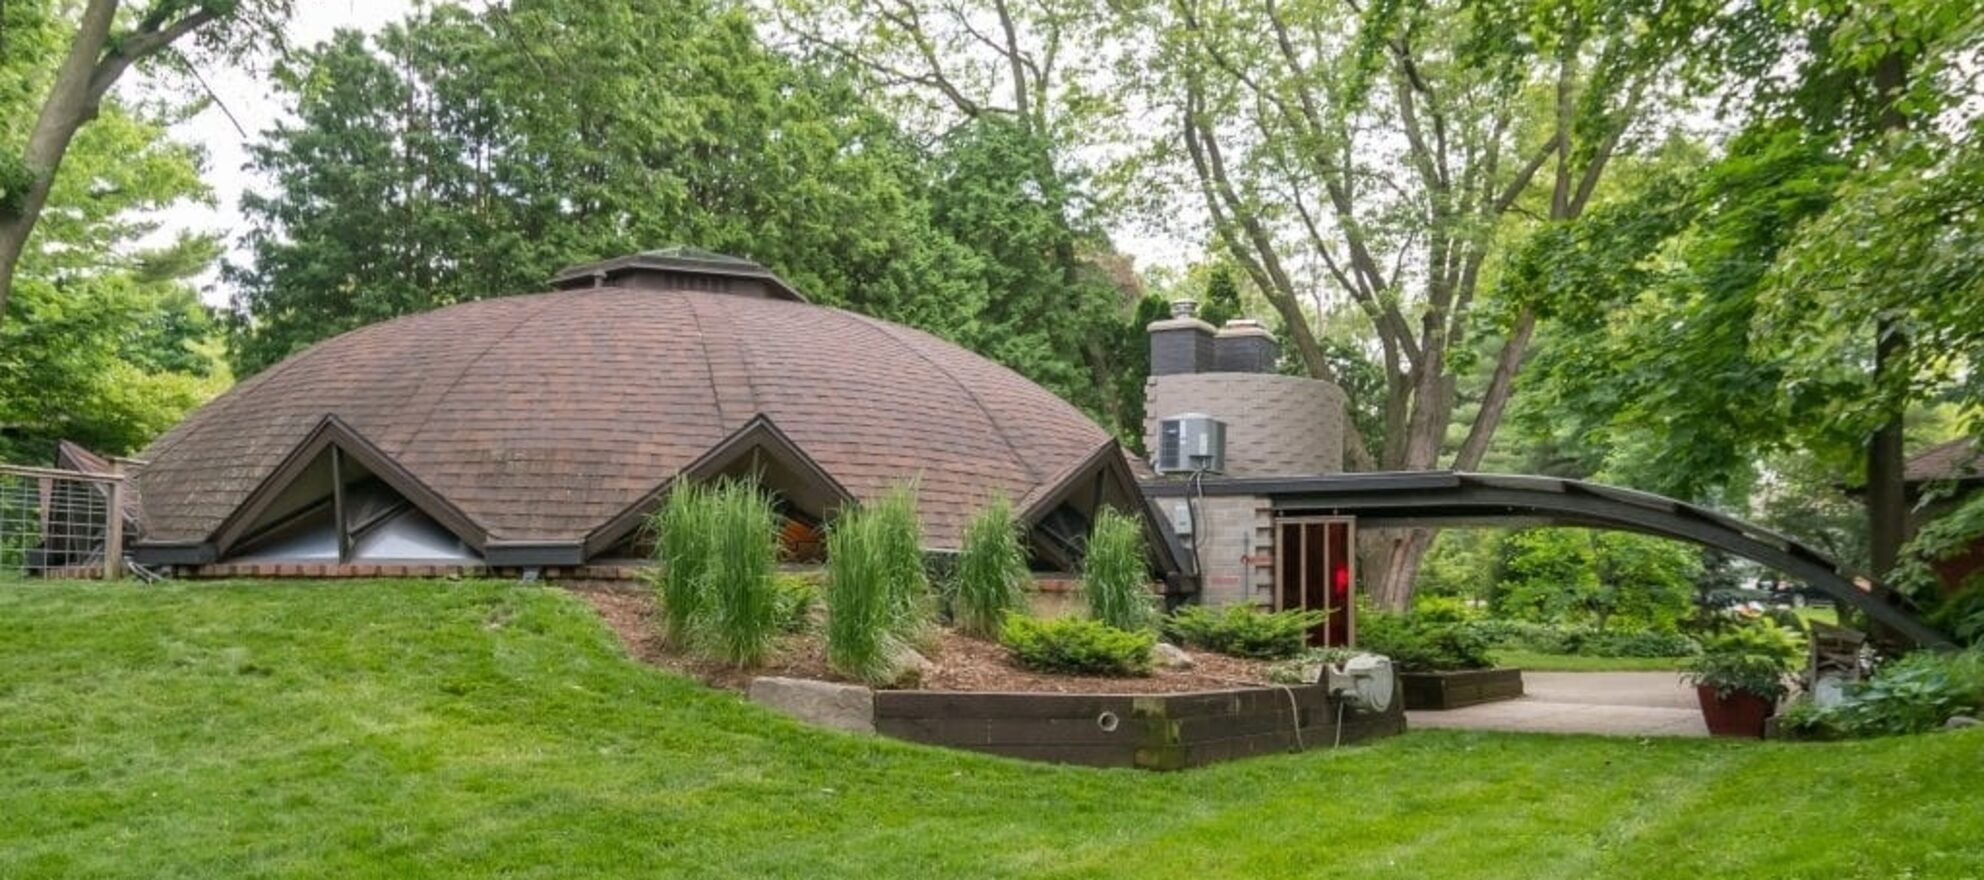 Mushroom house by Frank Lloyd Wright's apprentice is on sale for $449K